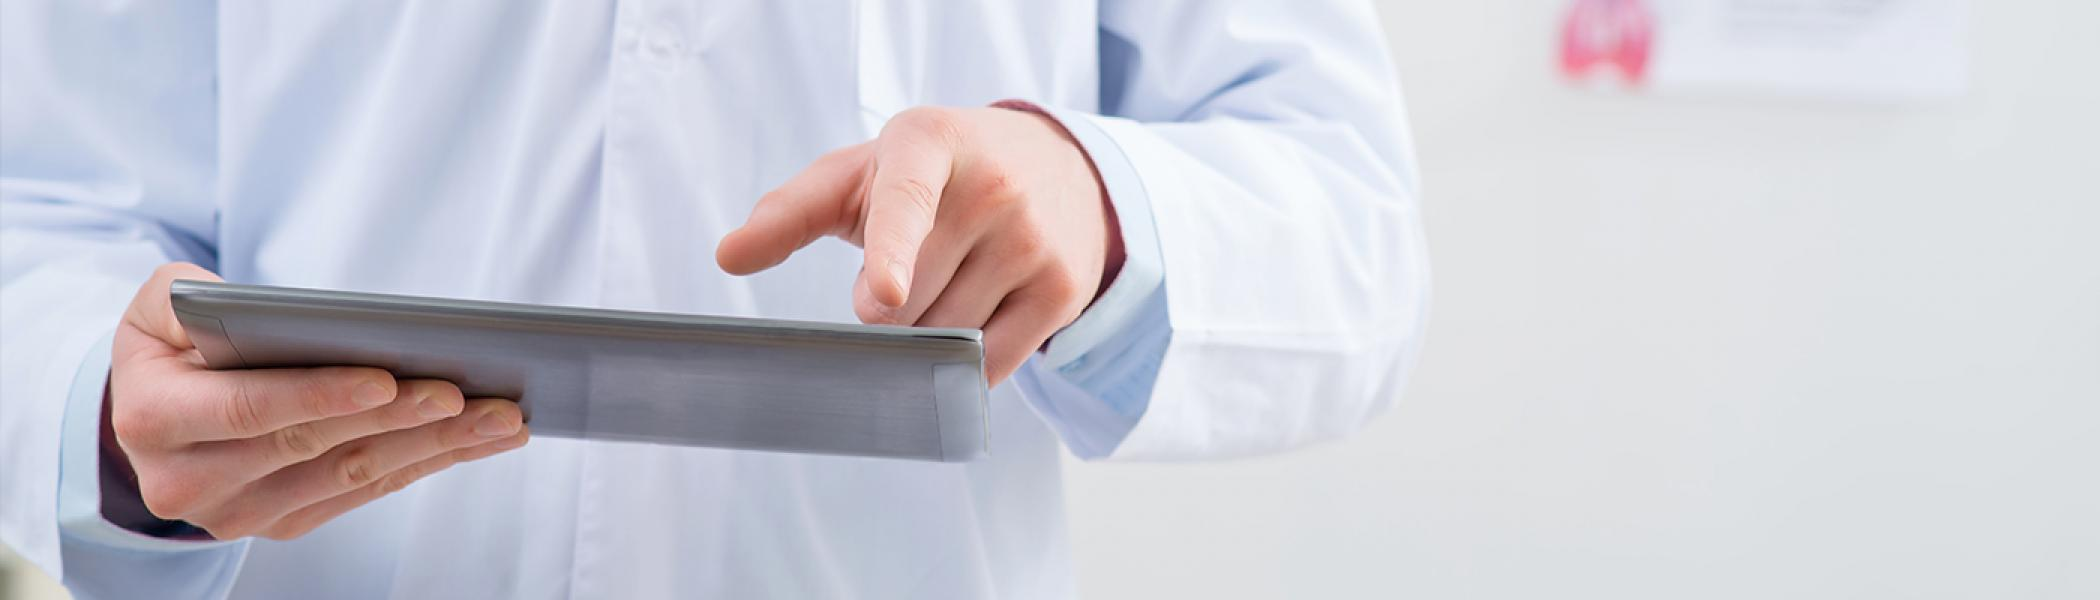 doctor is holding ipad in one hand